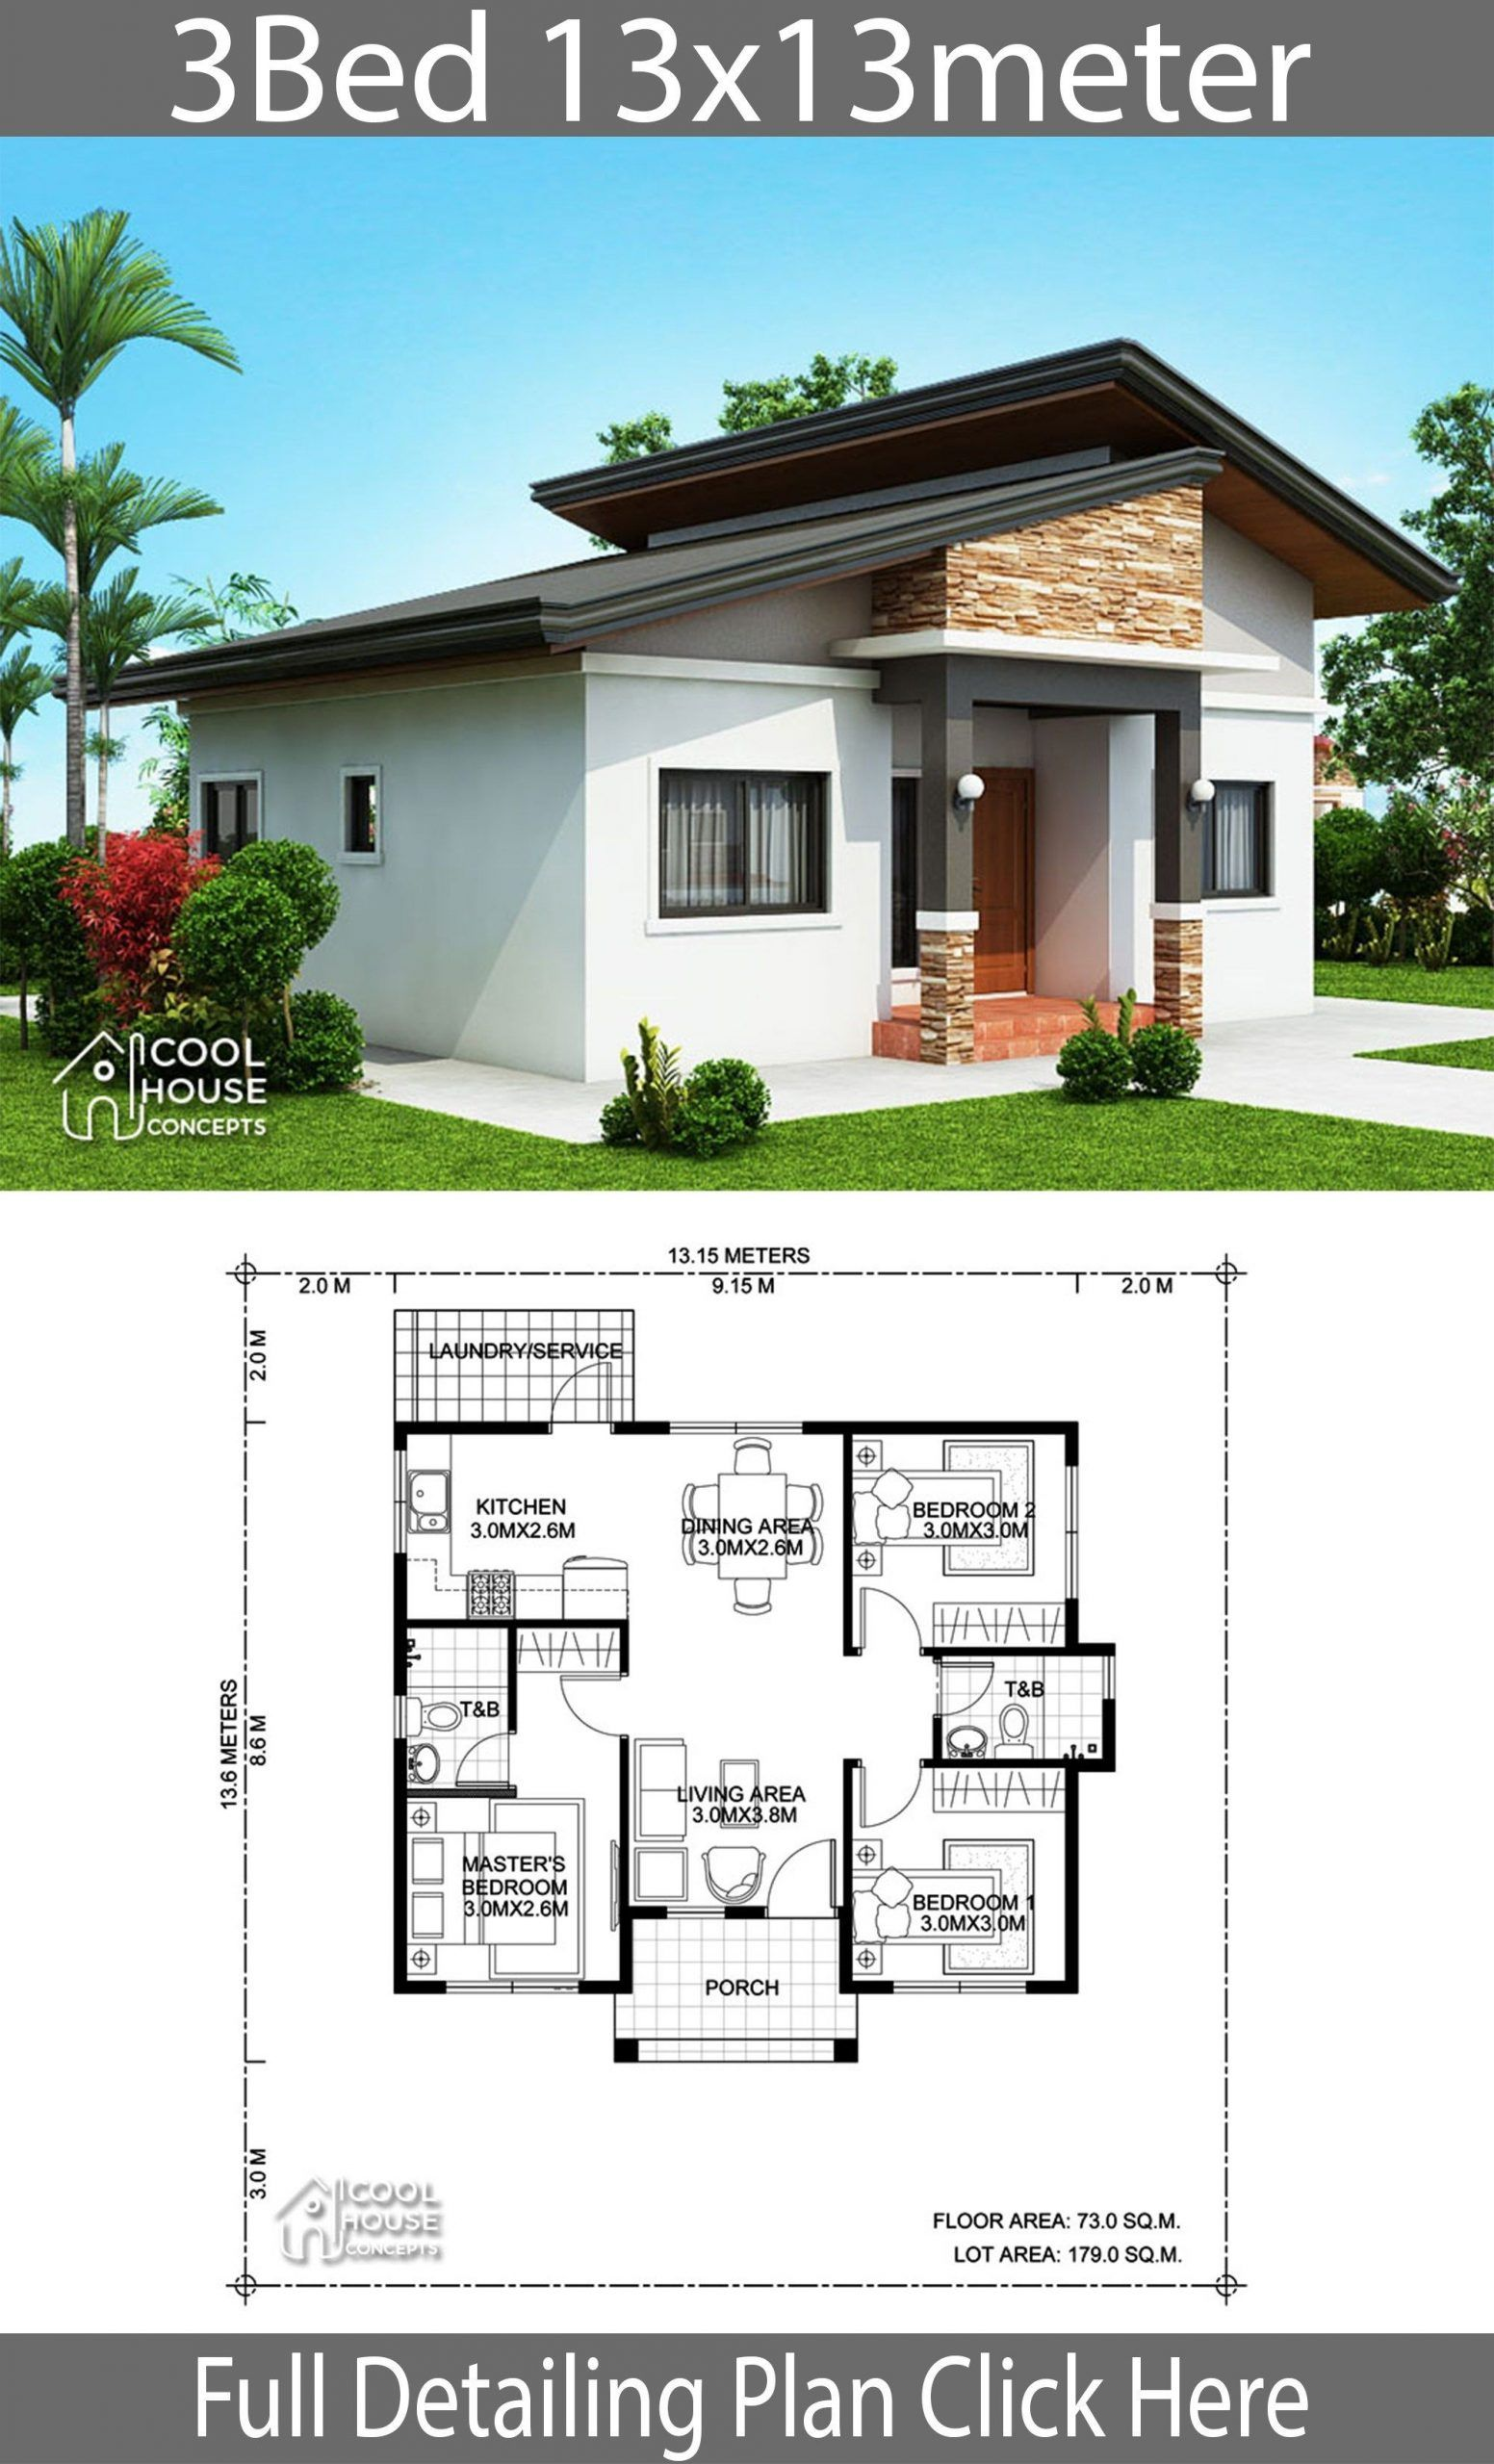 Home Design Plan 13x13m With 3 Bedrooms Home Ideas 13x13m Bedrooms Design Home Ideas Plan In 2020 Simple House Design Cool House Designs Bungalow House Design